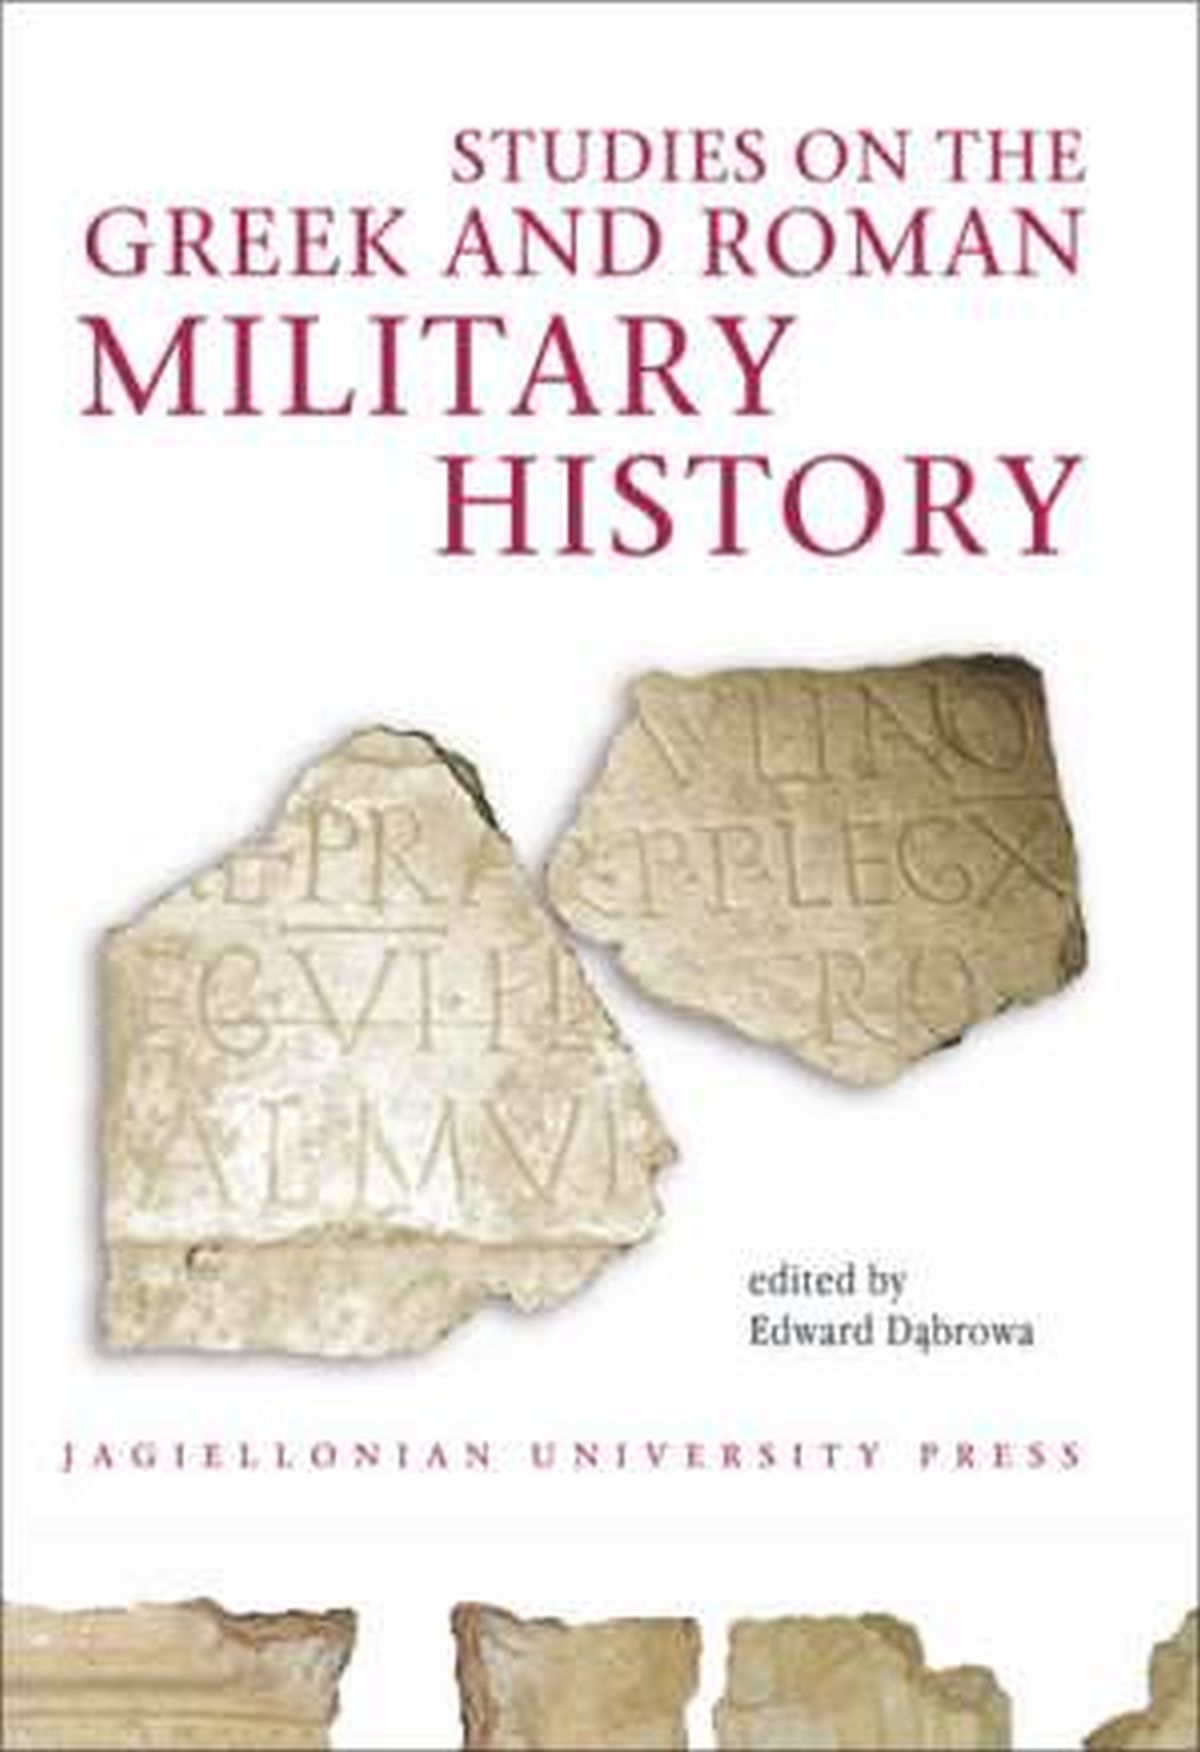 Studies on the Greek and Roman Military History. Electrum vol. 14